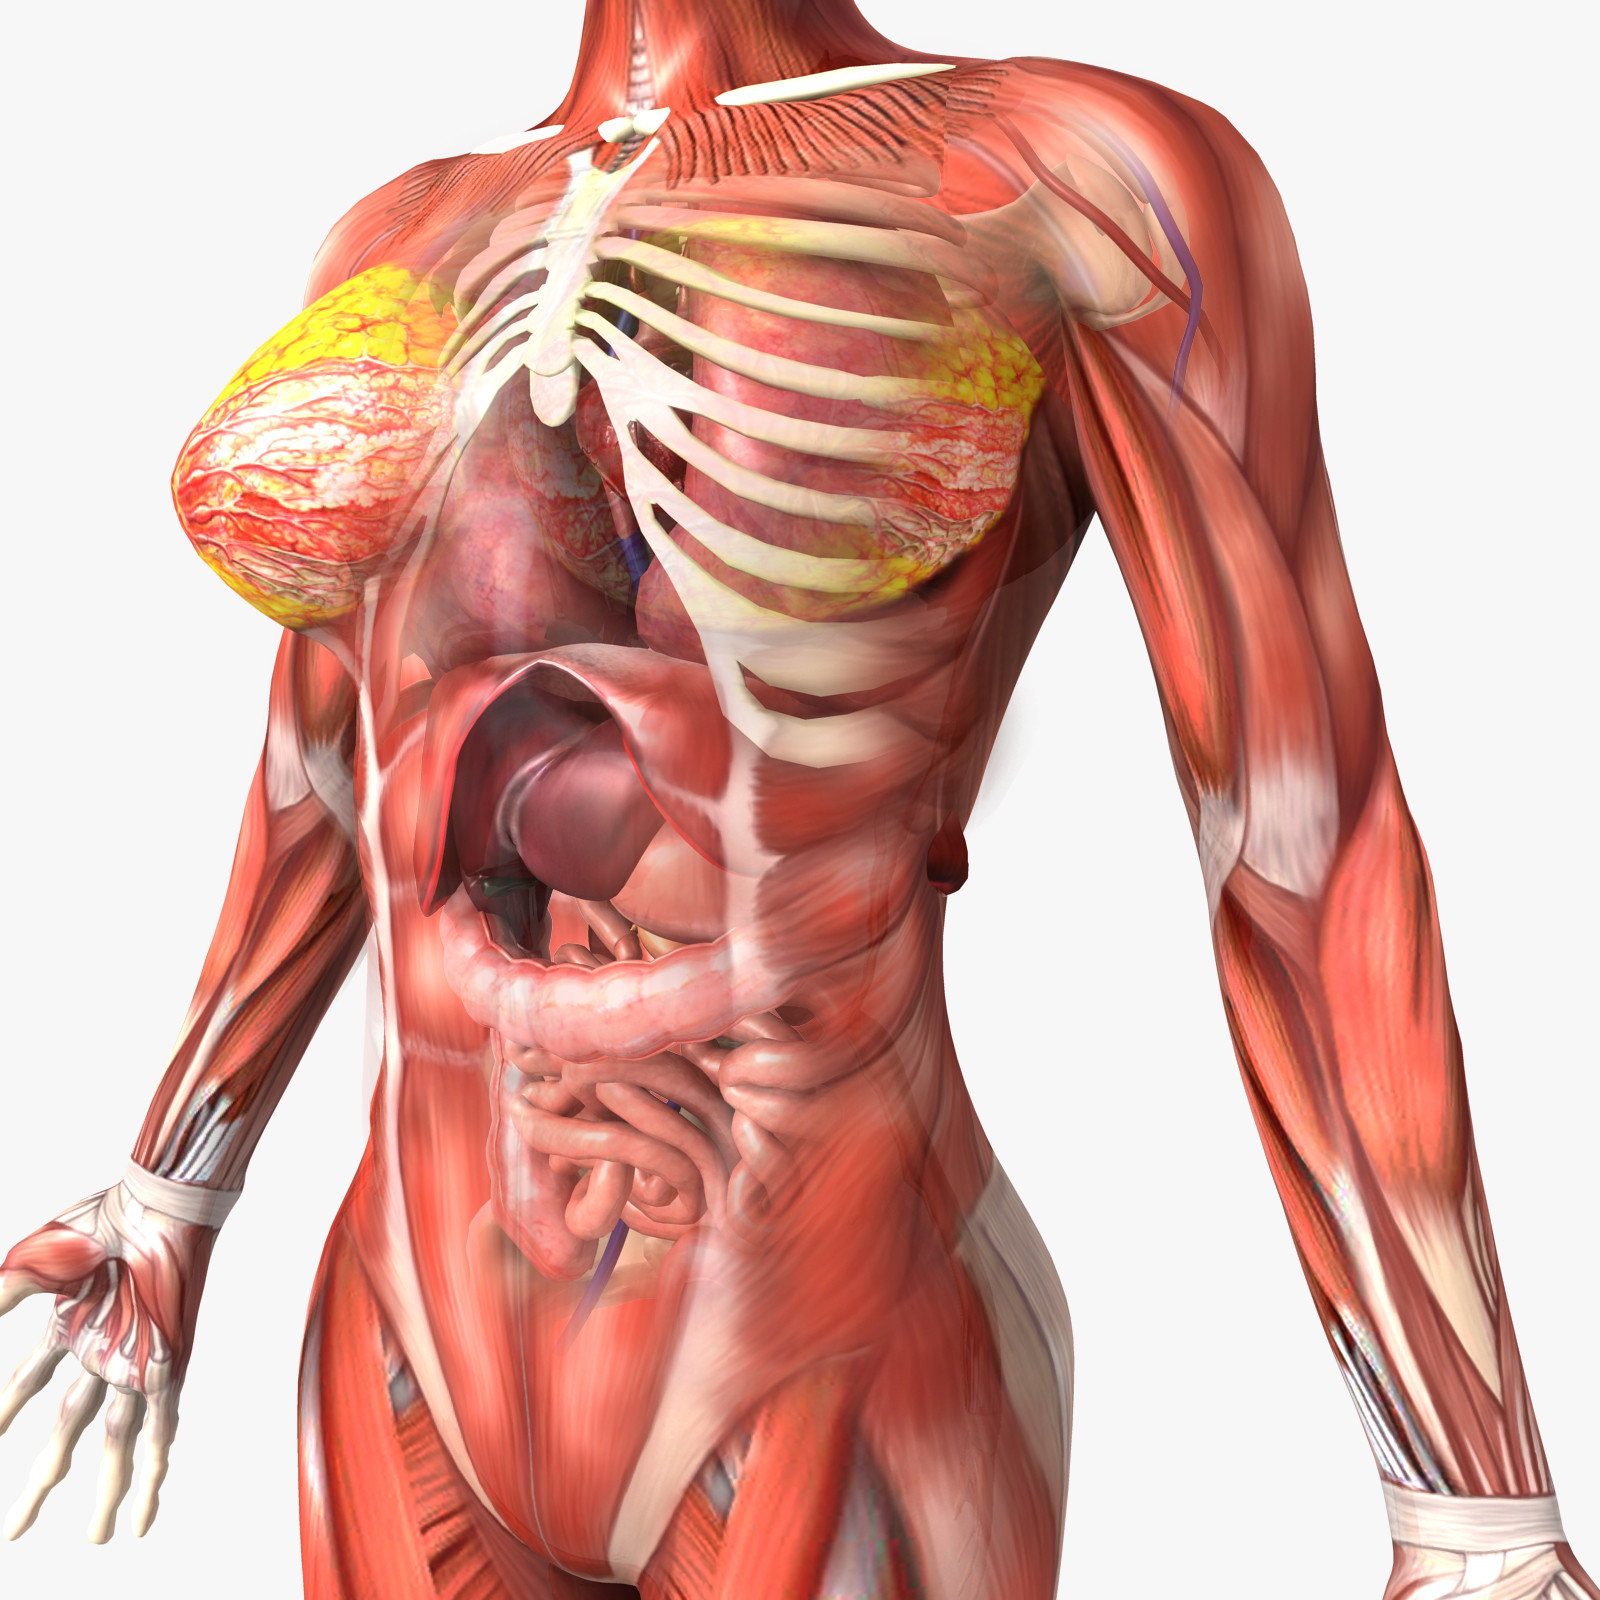 Human Male And Female Anatomy 3d Model